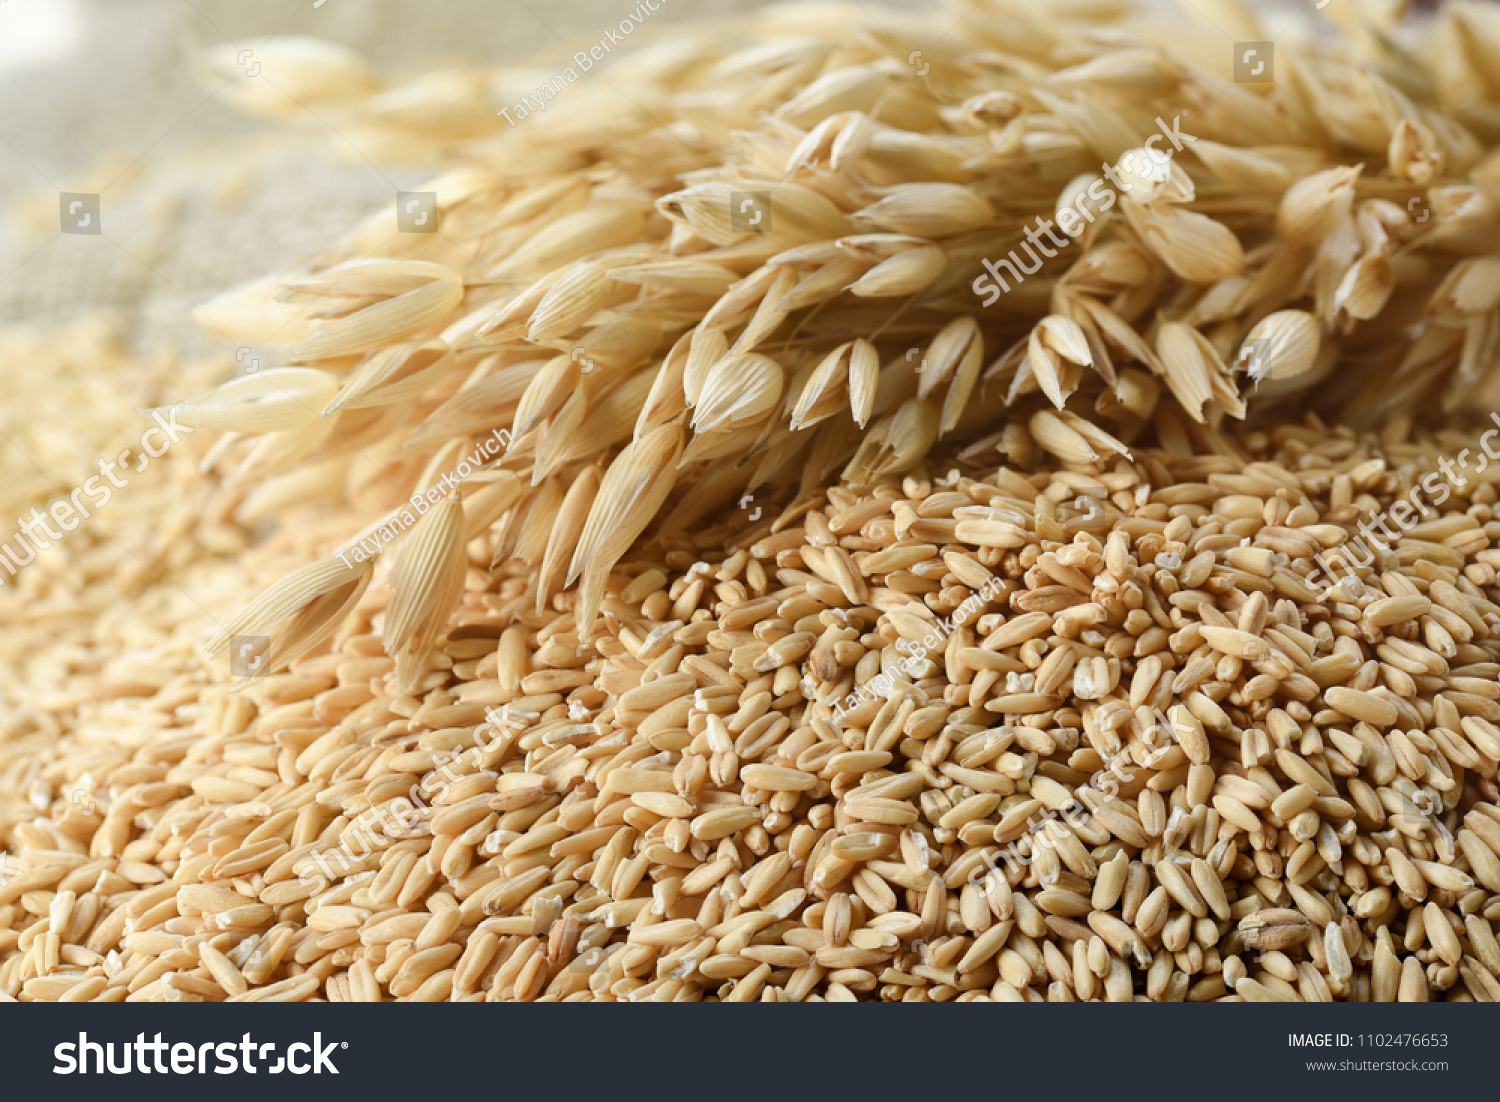 hight resolution of whole grains of oats and oat spikelets